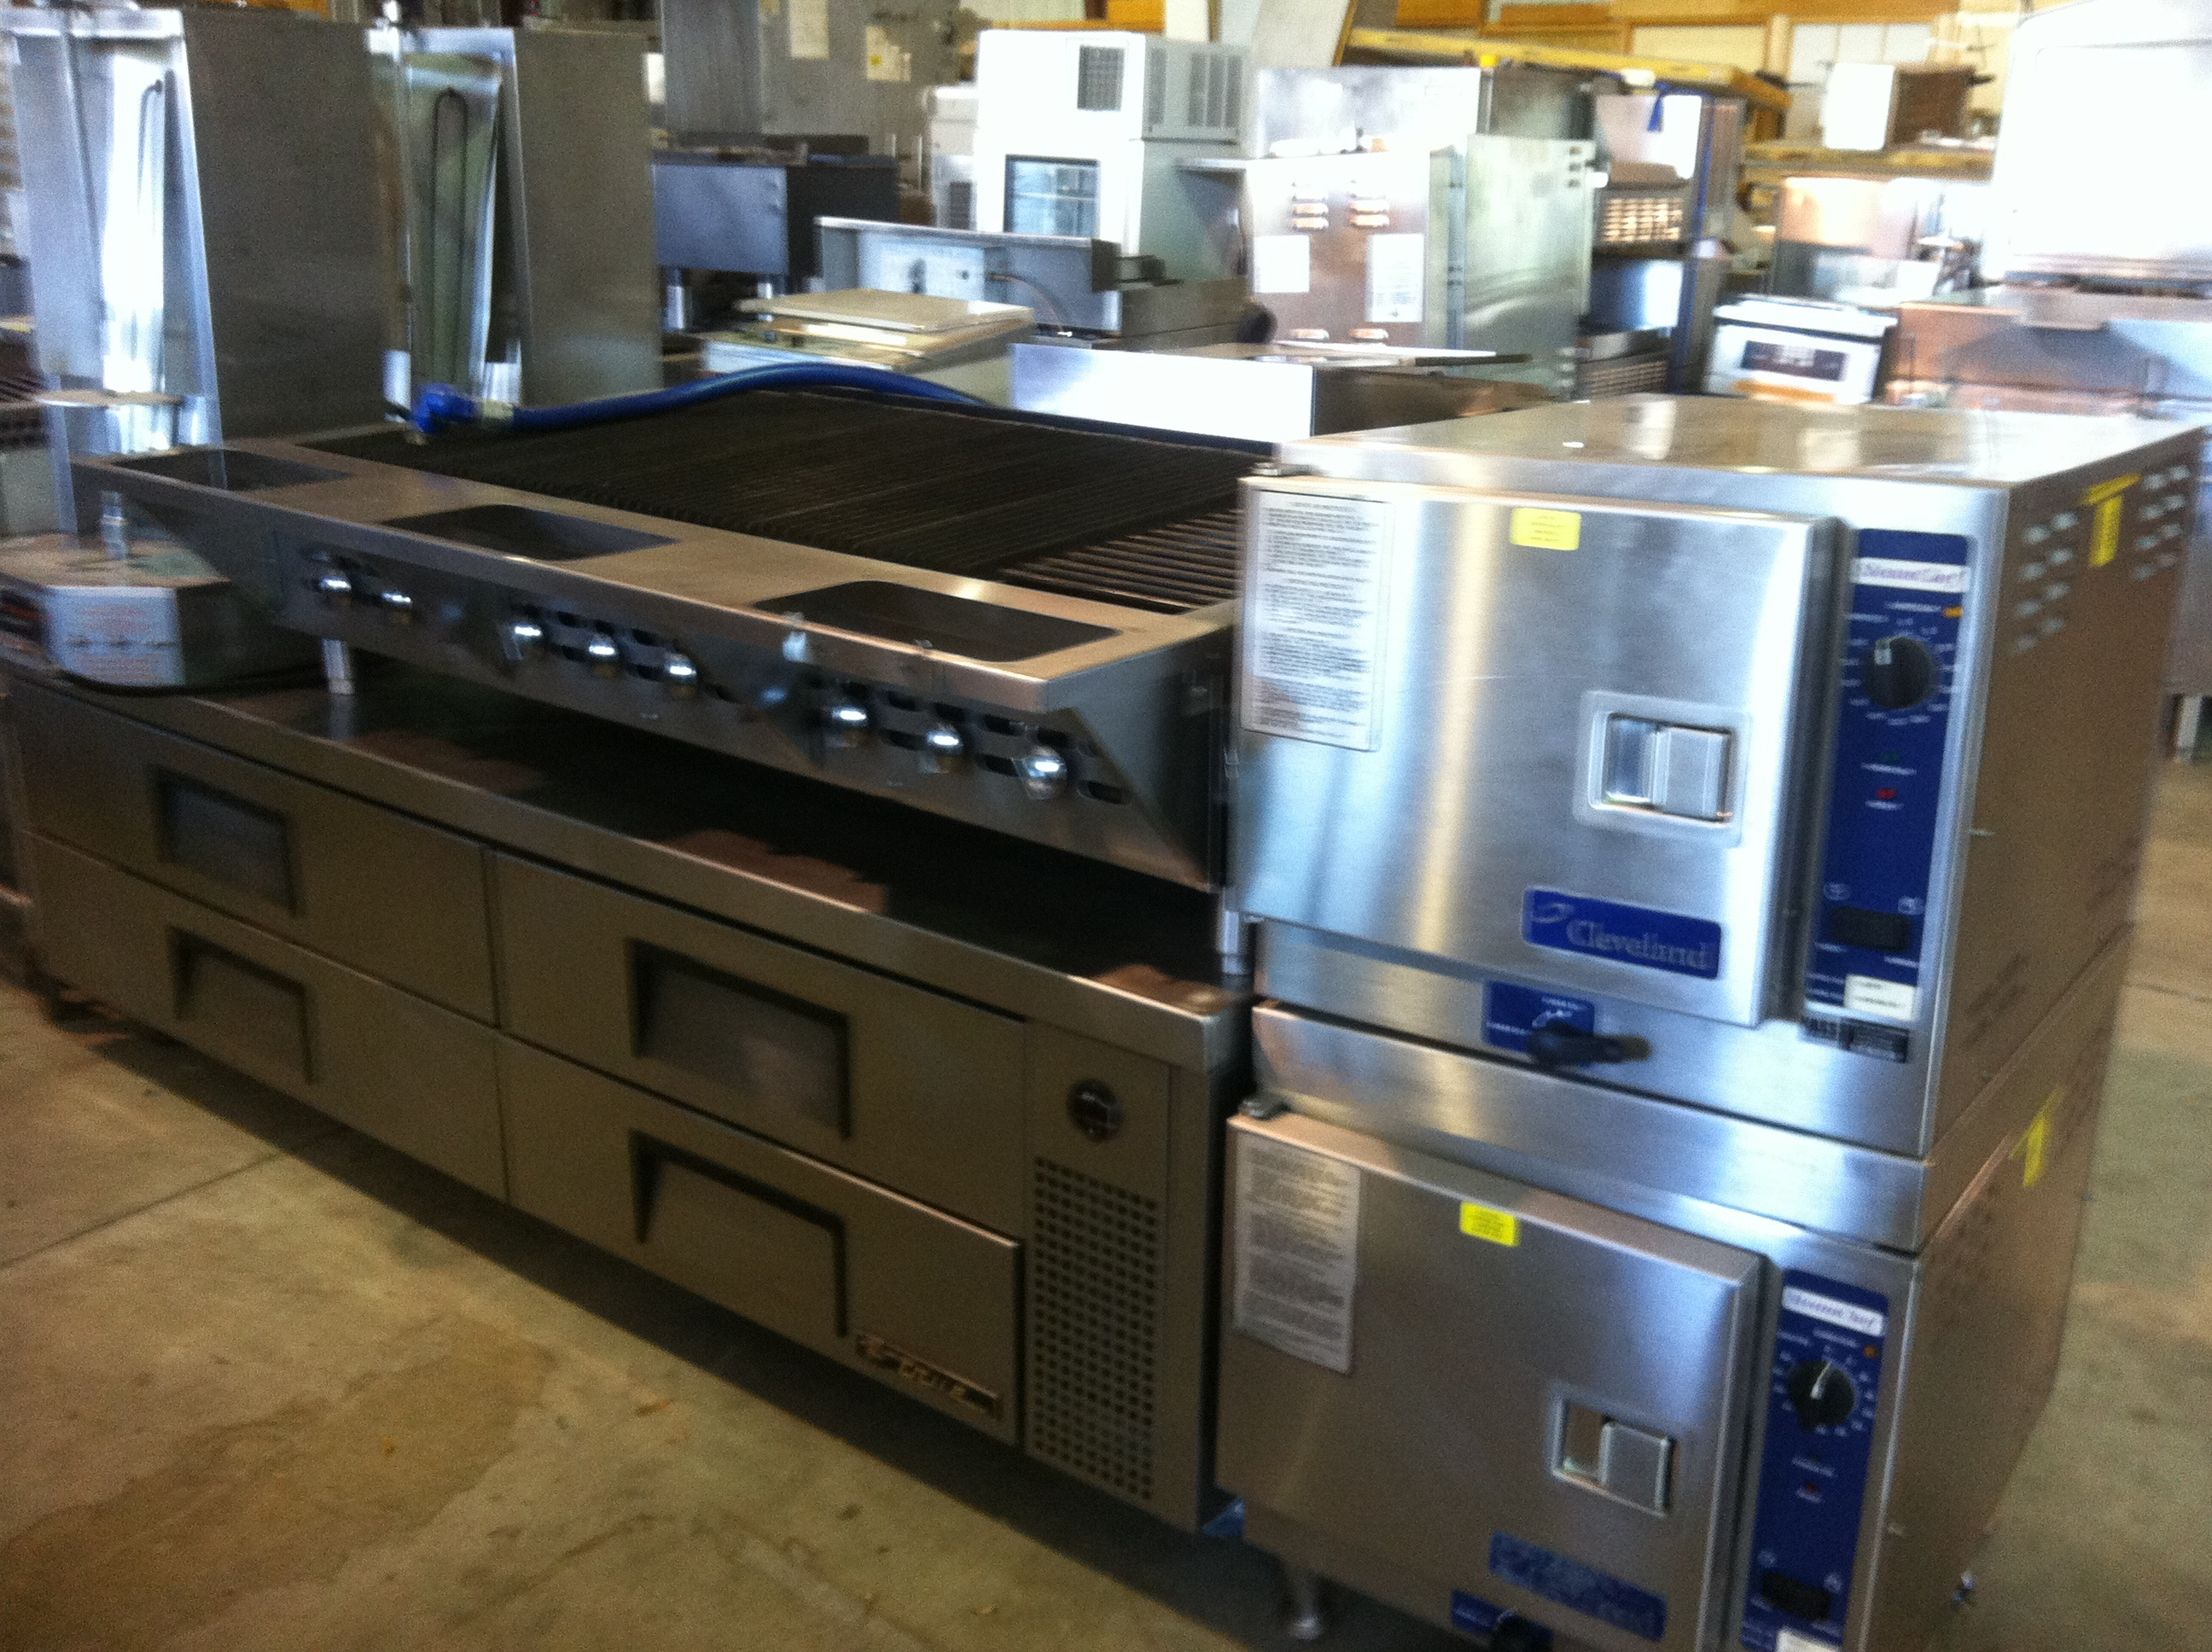 Restaurant Kitchen Equipment ~ Kitchen equipment for churches daycares retirement homes